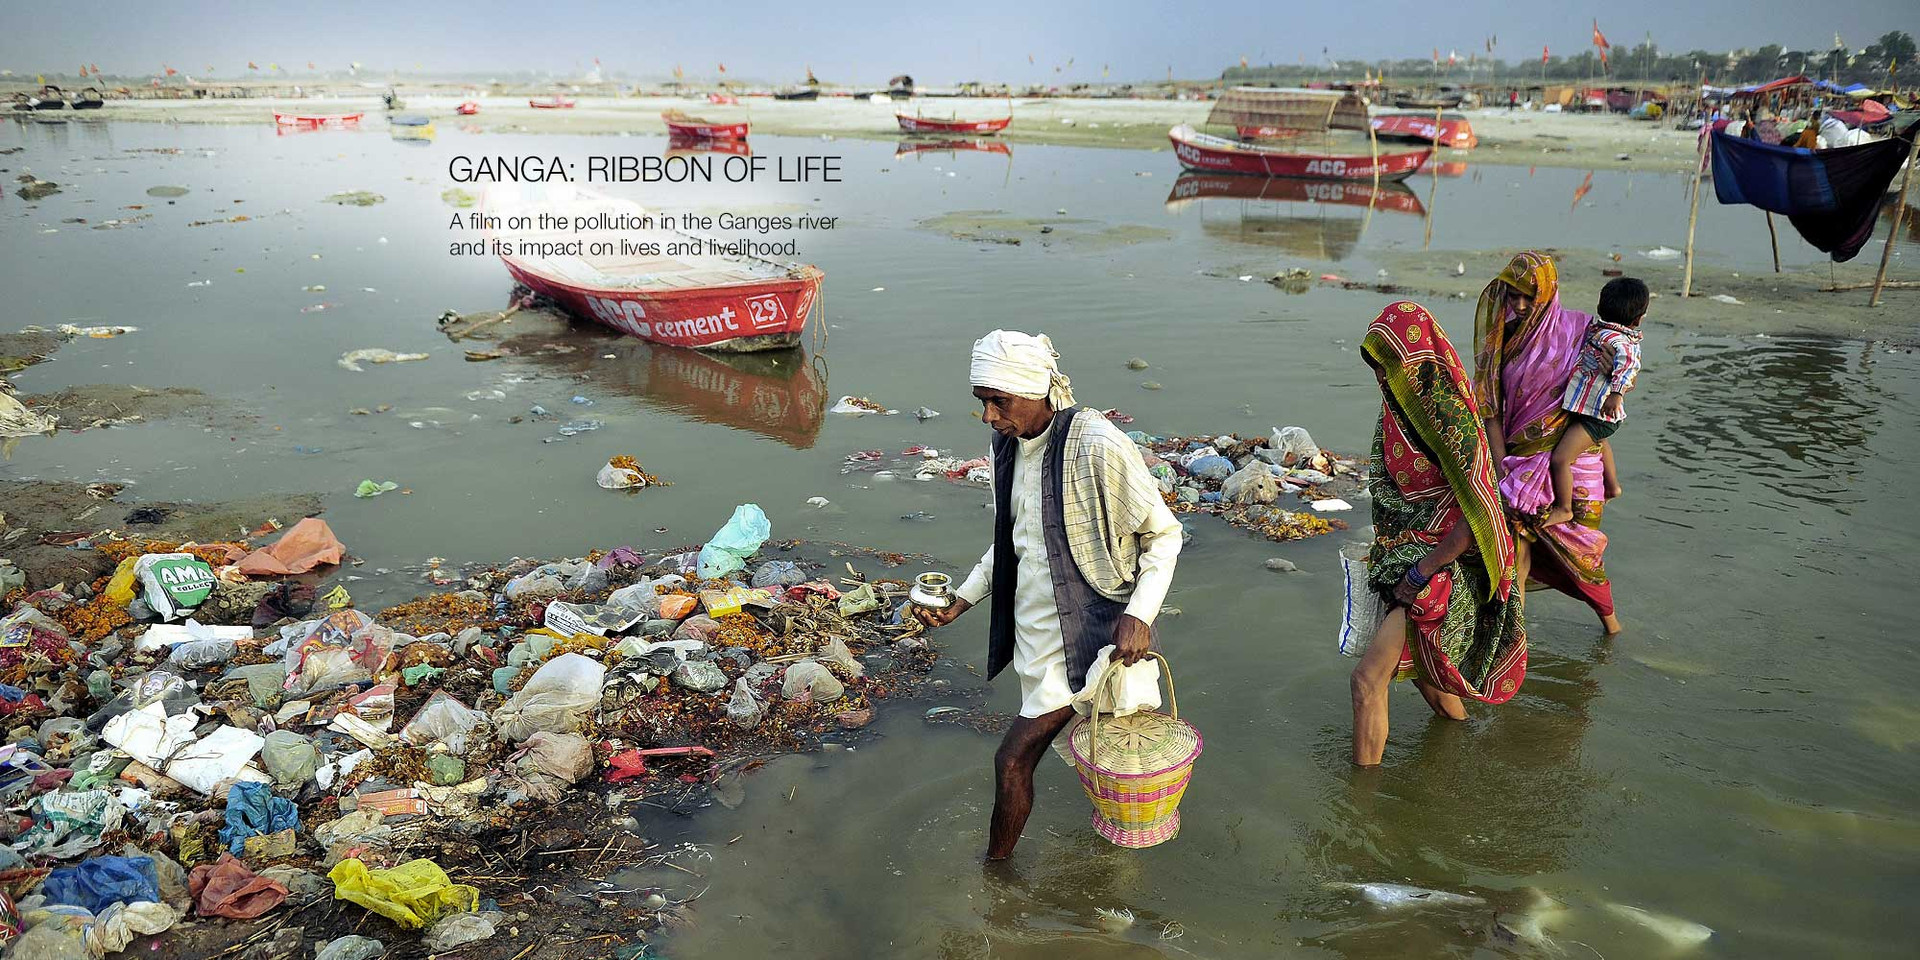 Ganga: Ribbon of Life